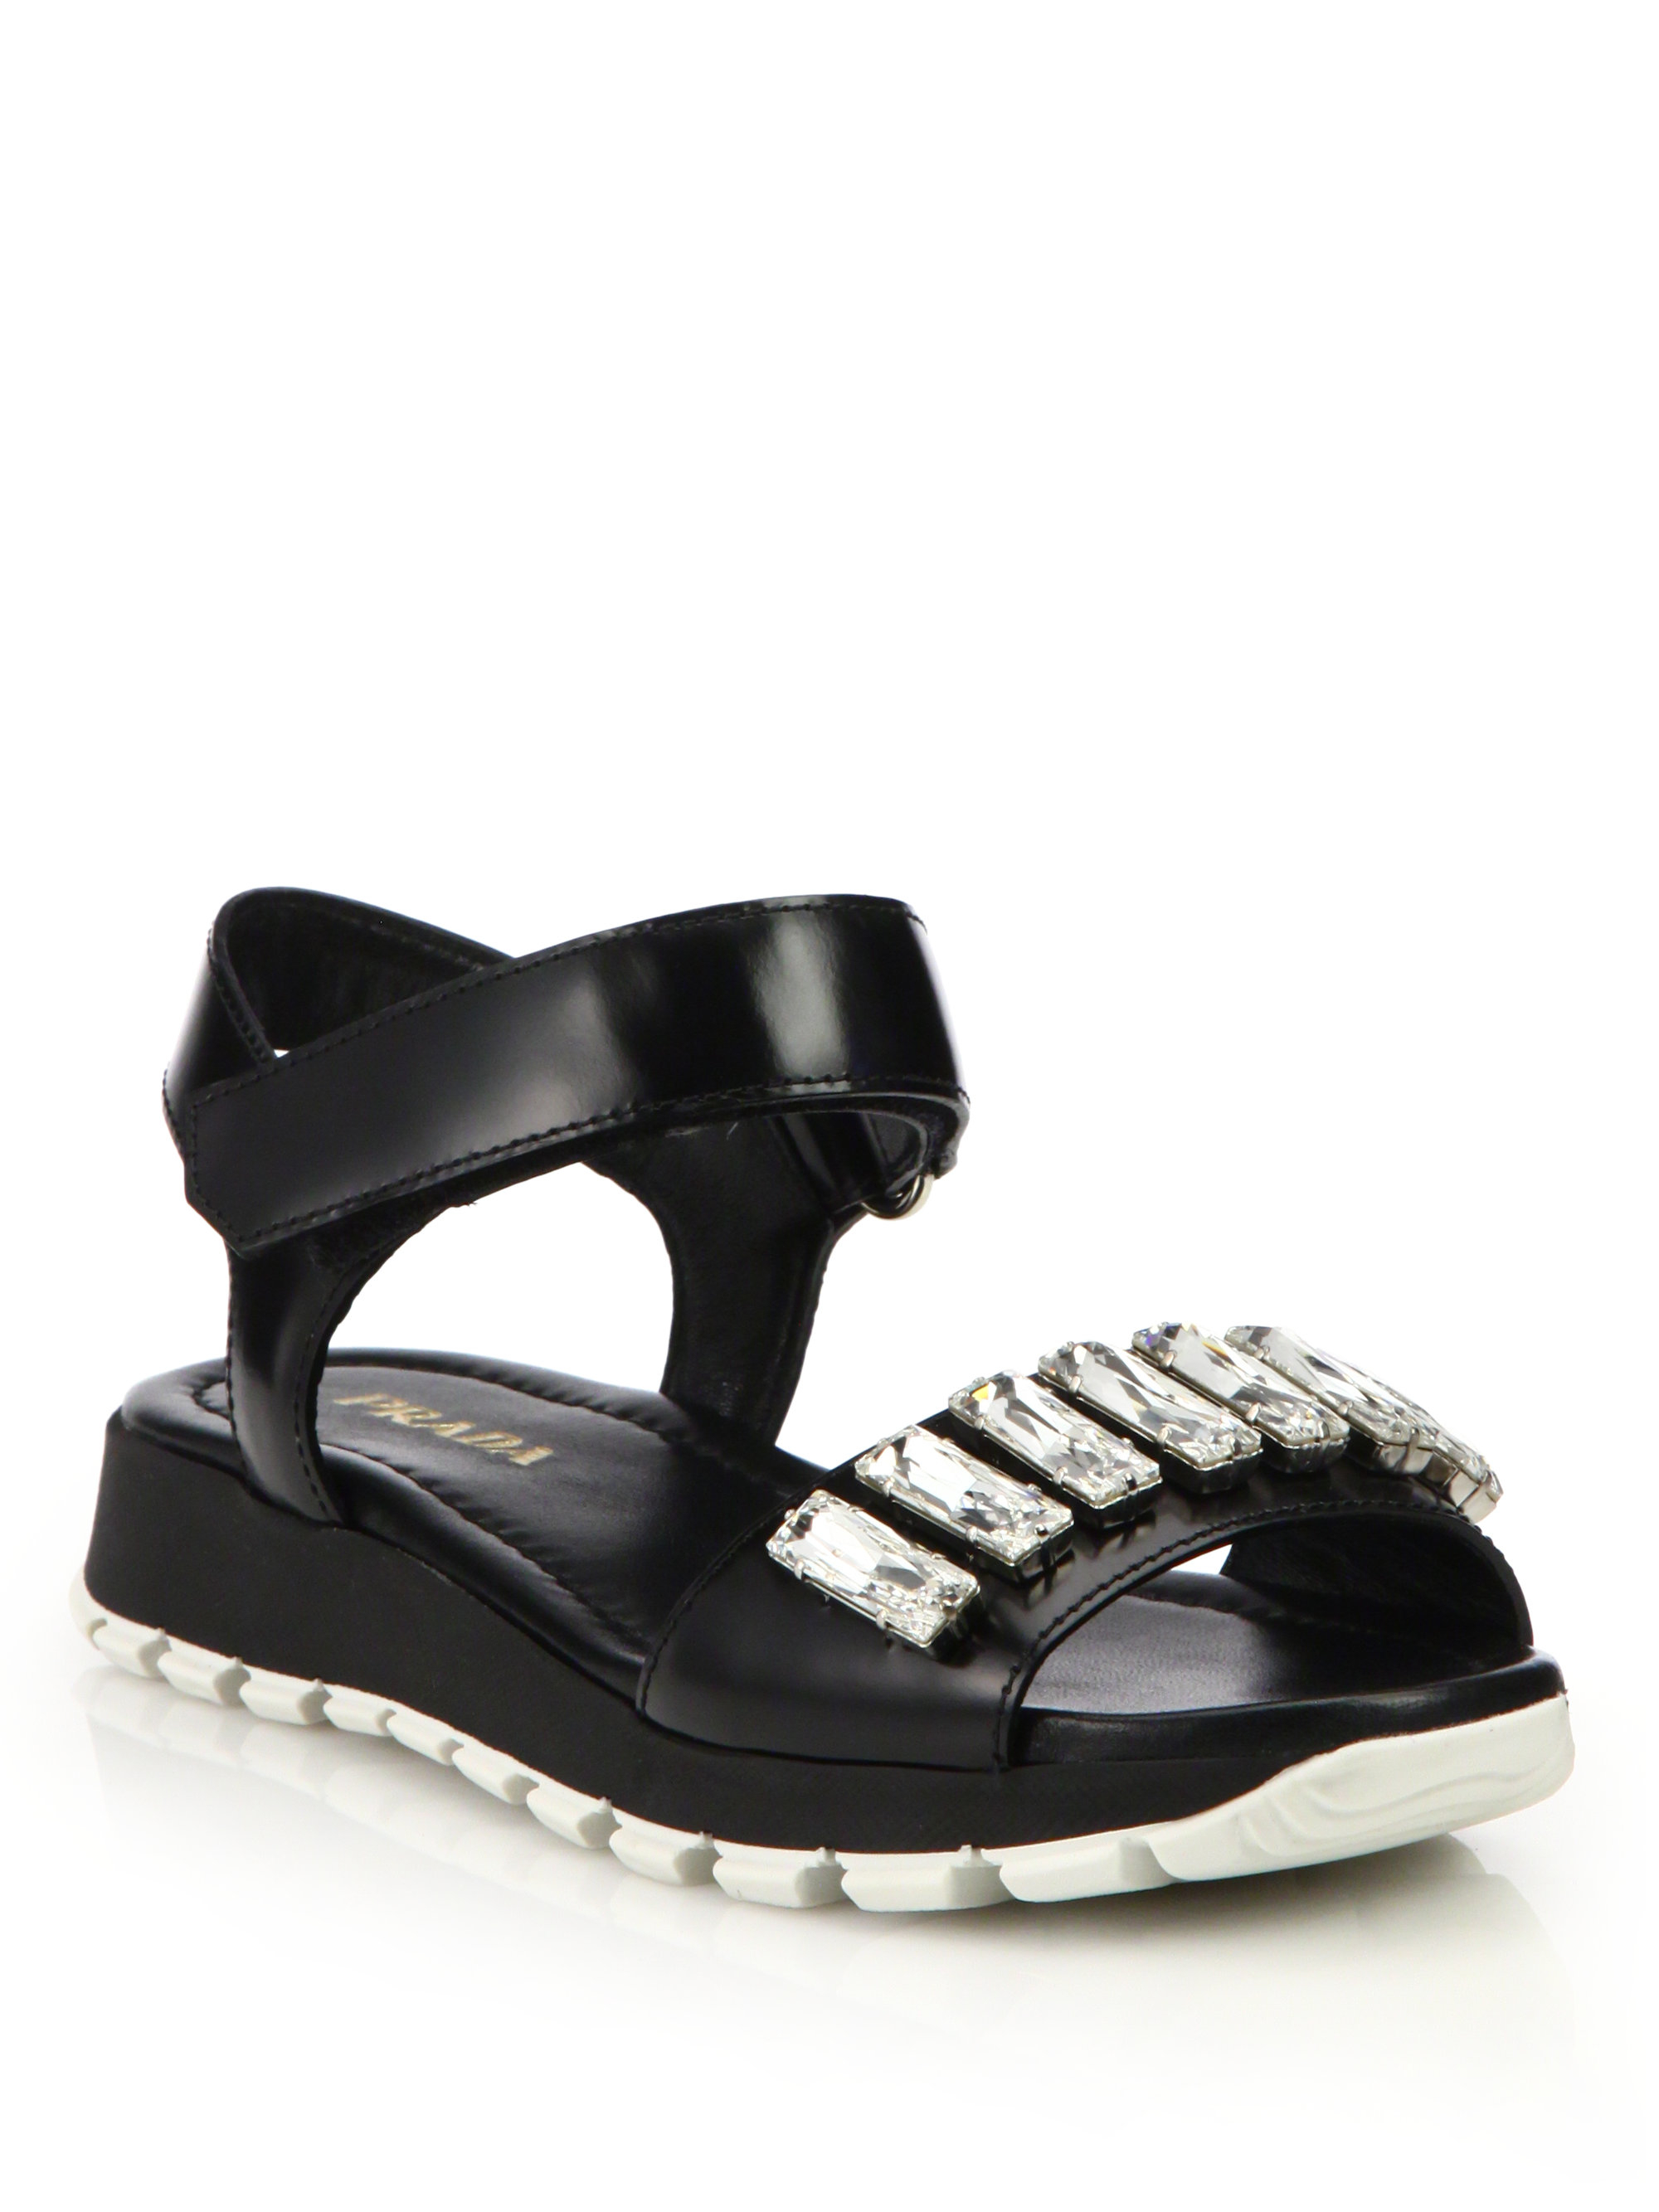 crystal embellished sandals - Black Prada